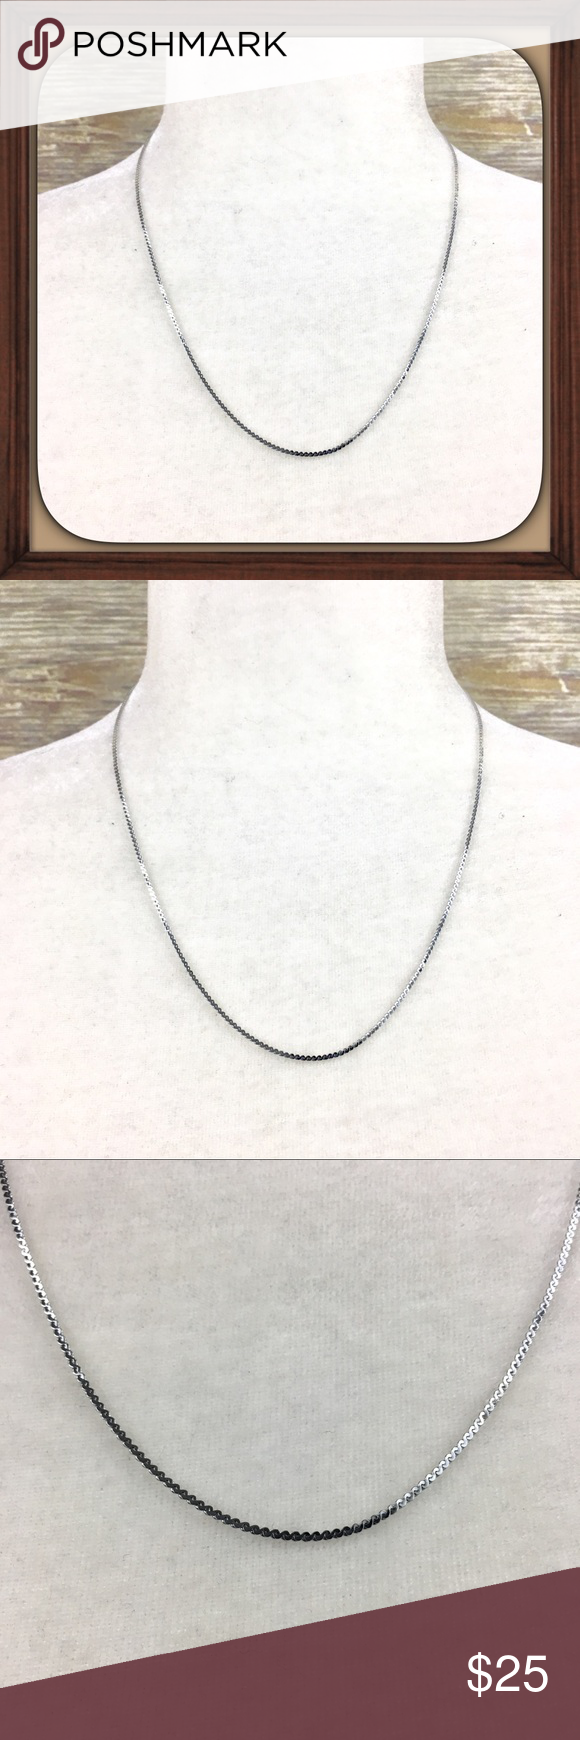 Silver Delight 18kgp Ma Stamped Chain Necklace Silver Delight 18kgp Chain Necklace In Excellent Condition 20 Inch Chain Chain Necklace Necklace Fashion Tips